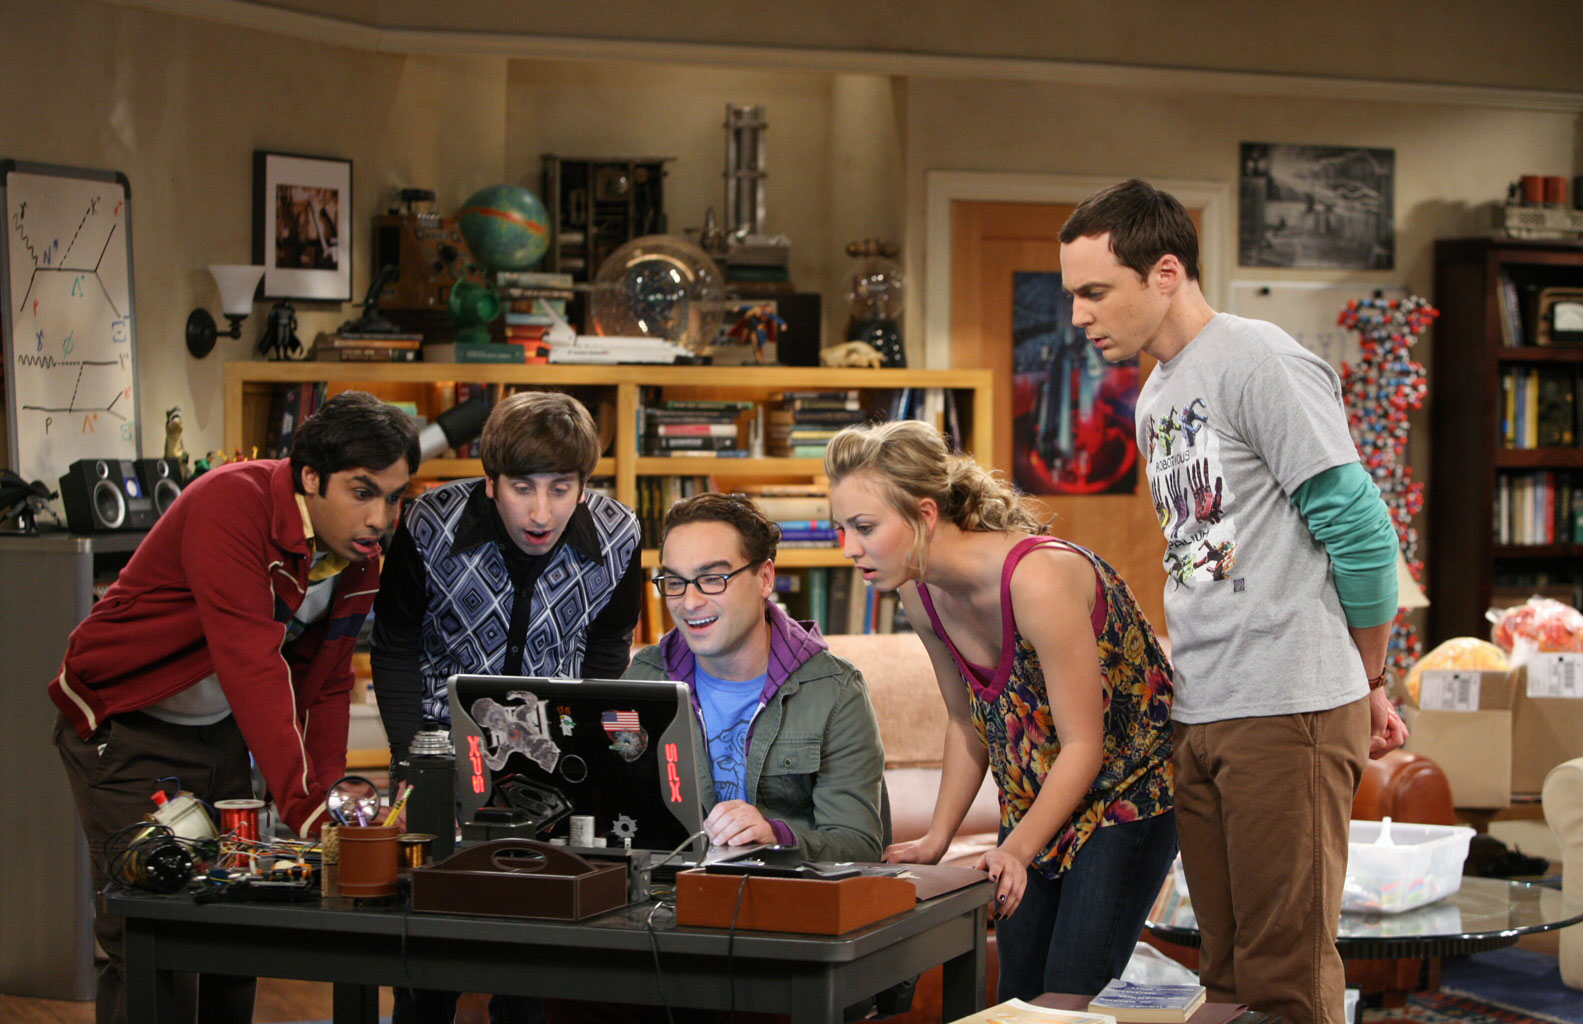 Big Bang Theory Bettwäsche 10 Lucruri Pe Care Nu Le Stiati Despre Big Bang Theory